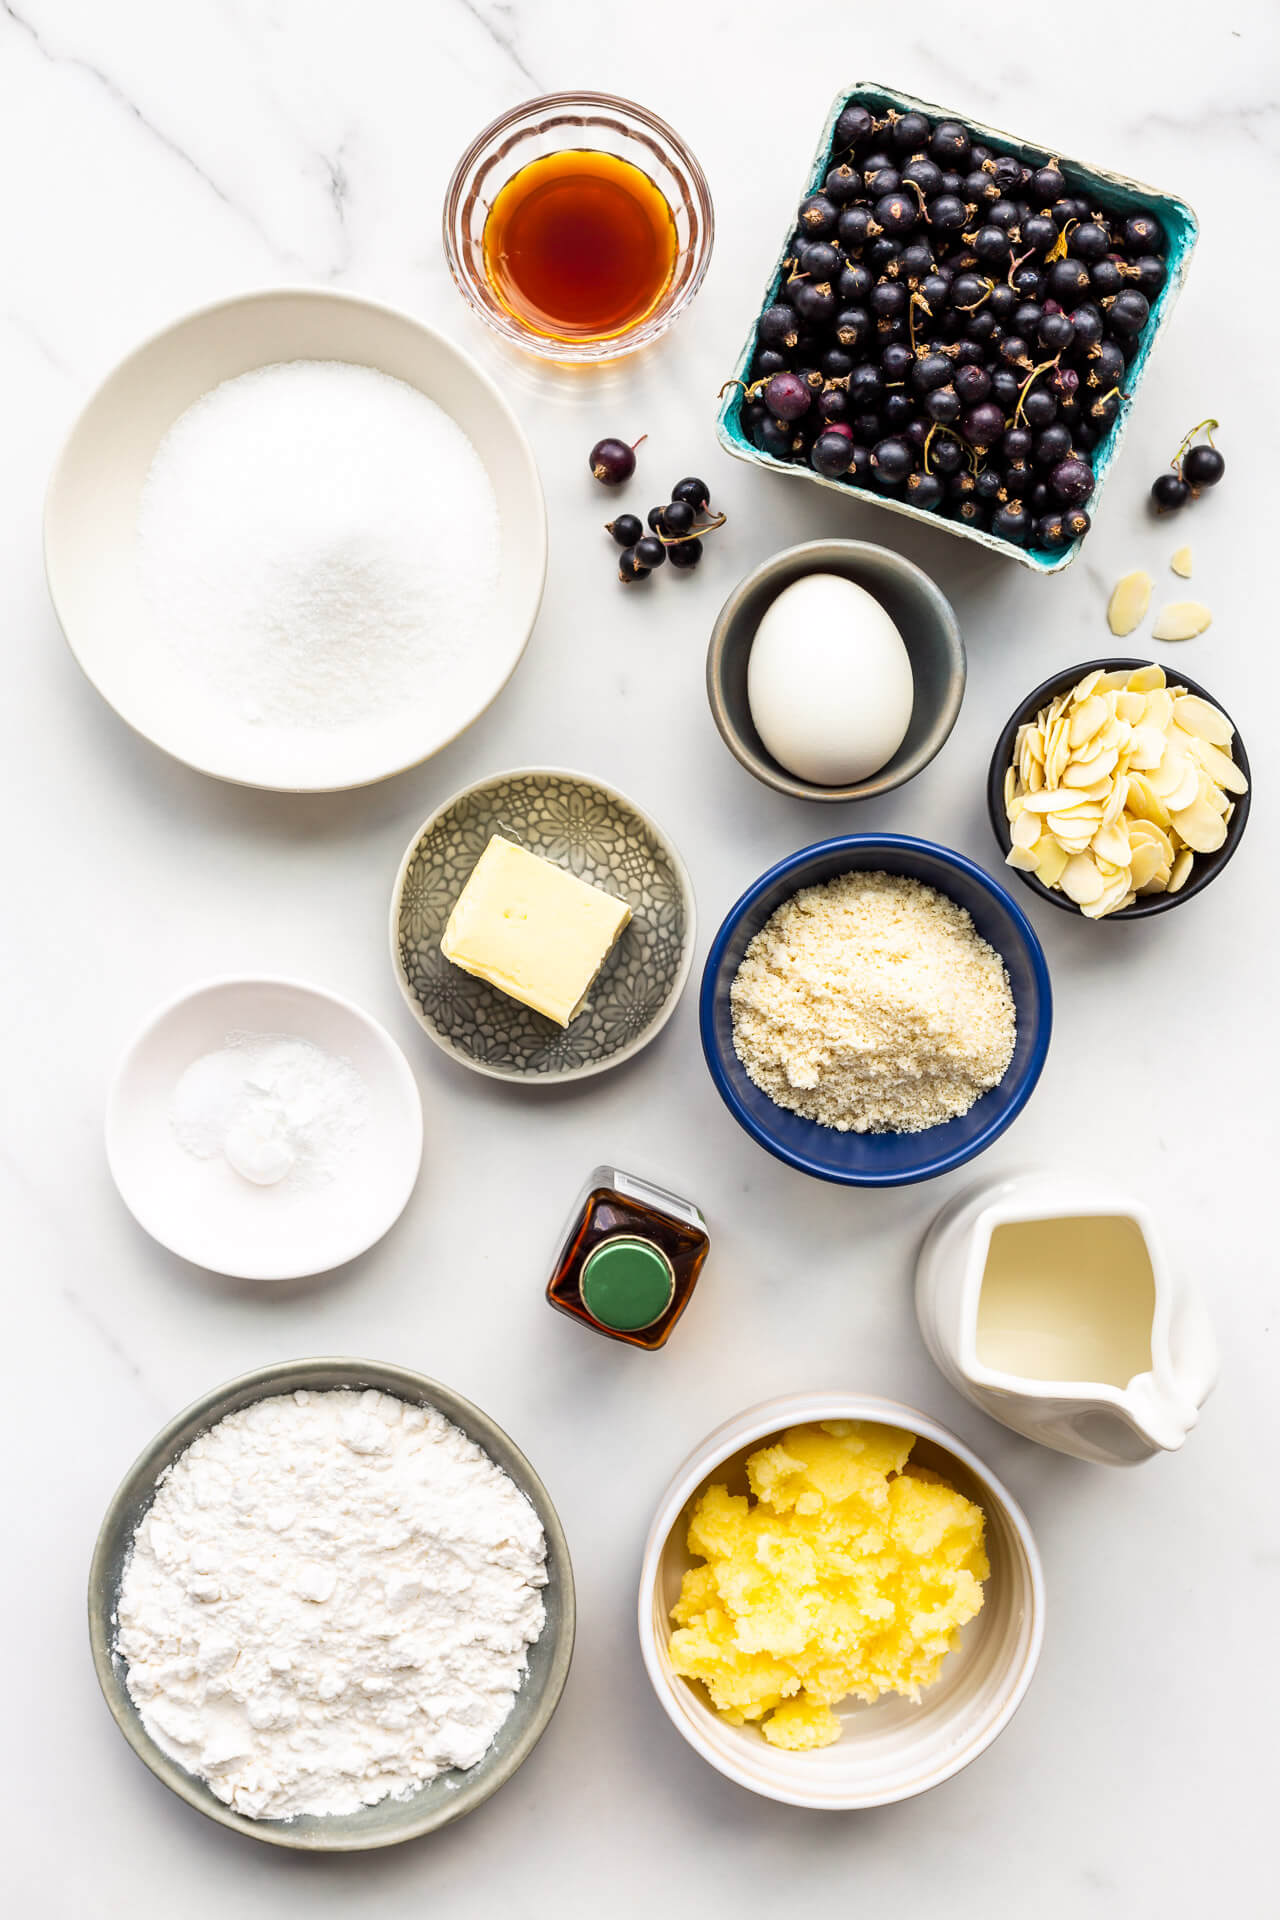 Ingredients for black currant cake measured out into small dishes, including black currants, vanilla extract, granulated sugar, egg, butter, ground almond, baking powder, salt, milk, flour, and a sugar paste to make a crispy topping